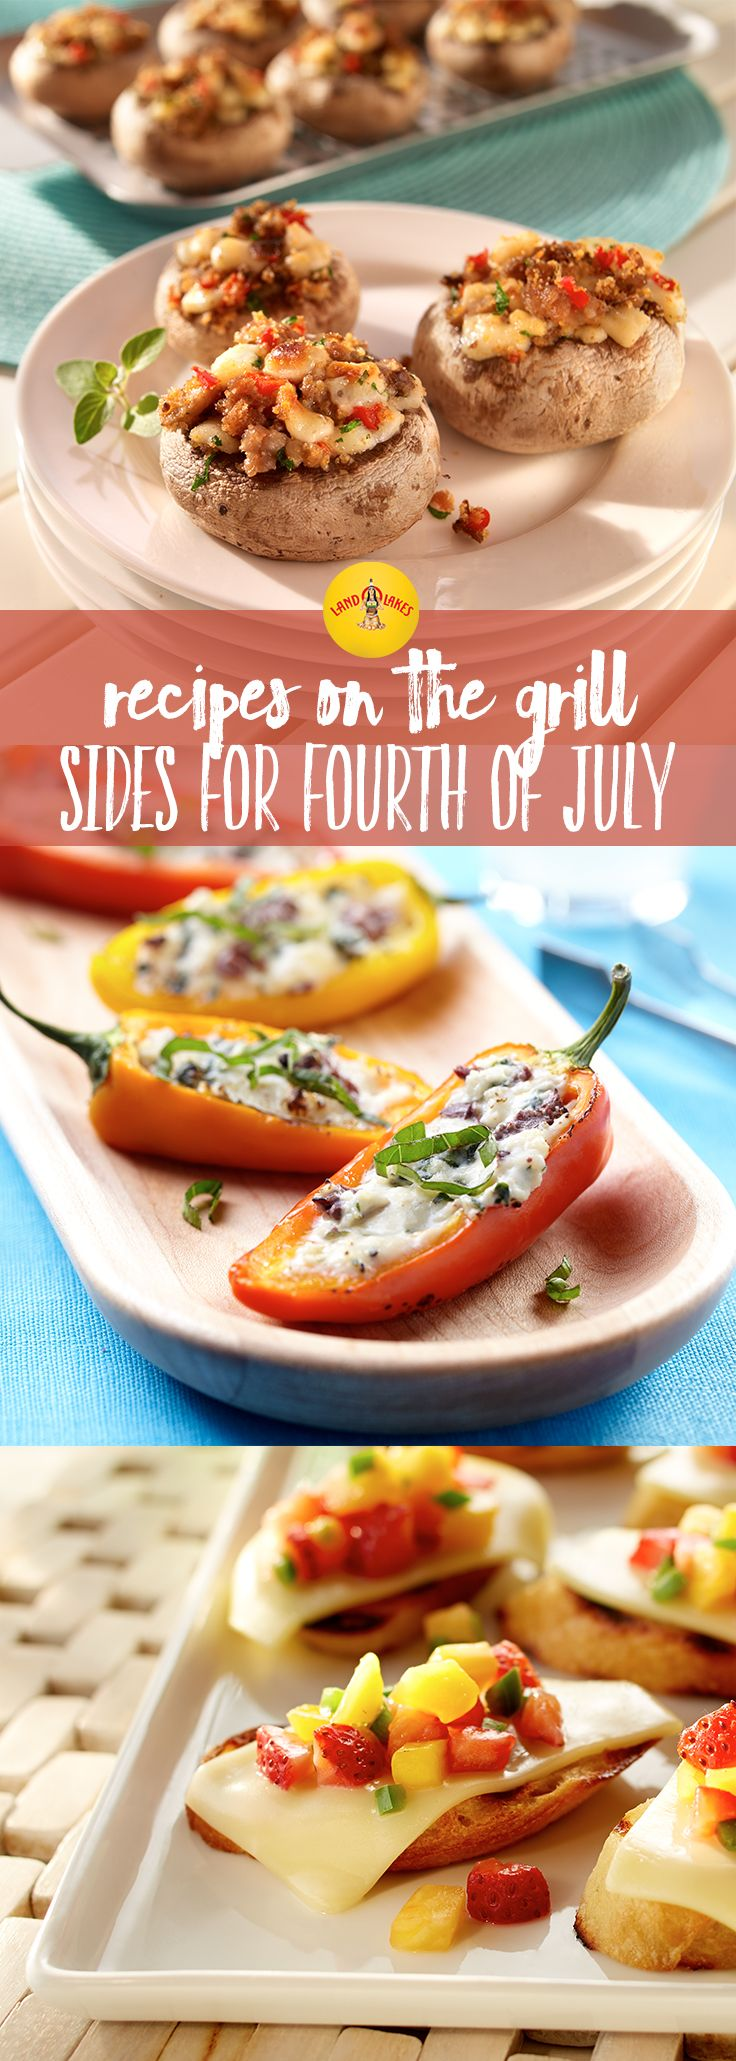 Start your July 4th celebration with these grilled bites. From stuffed mushrooms to stuffed peppers, you can't go wrong with quick and easy sides like these.